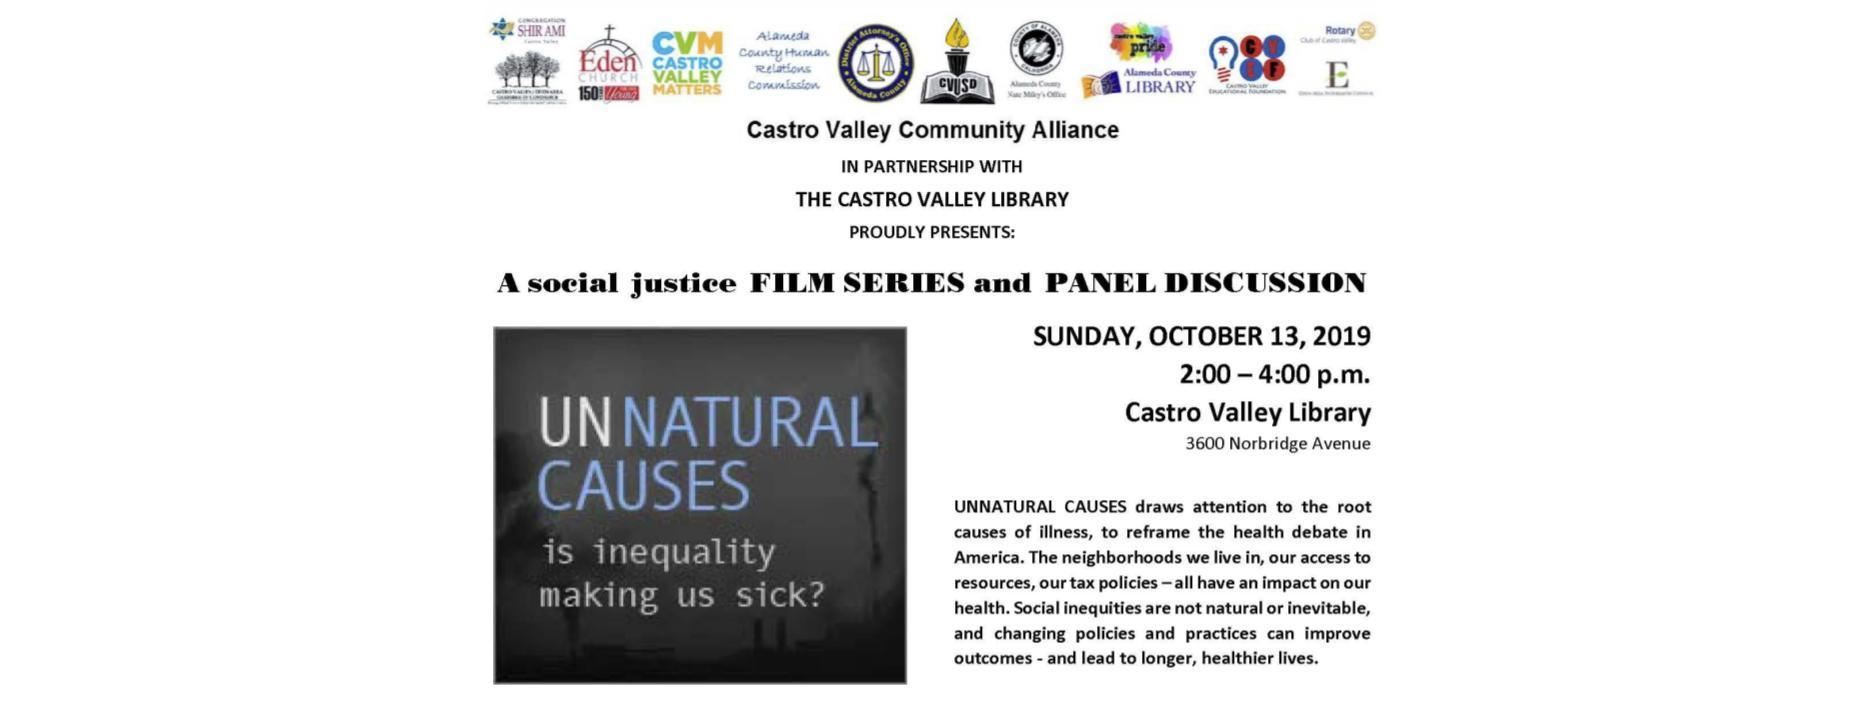 Community Alliance Film Series - October 13th